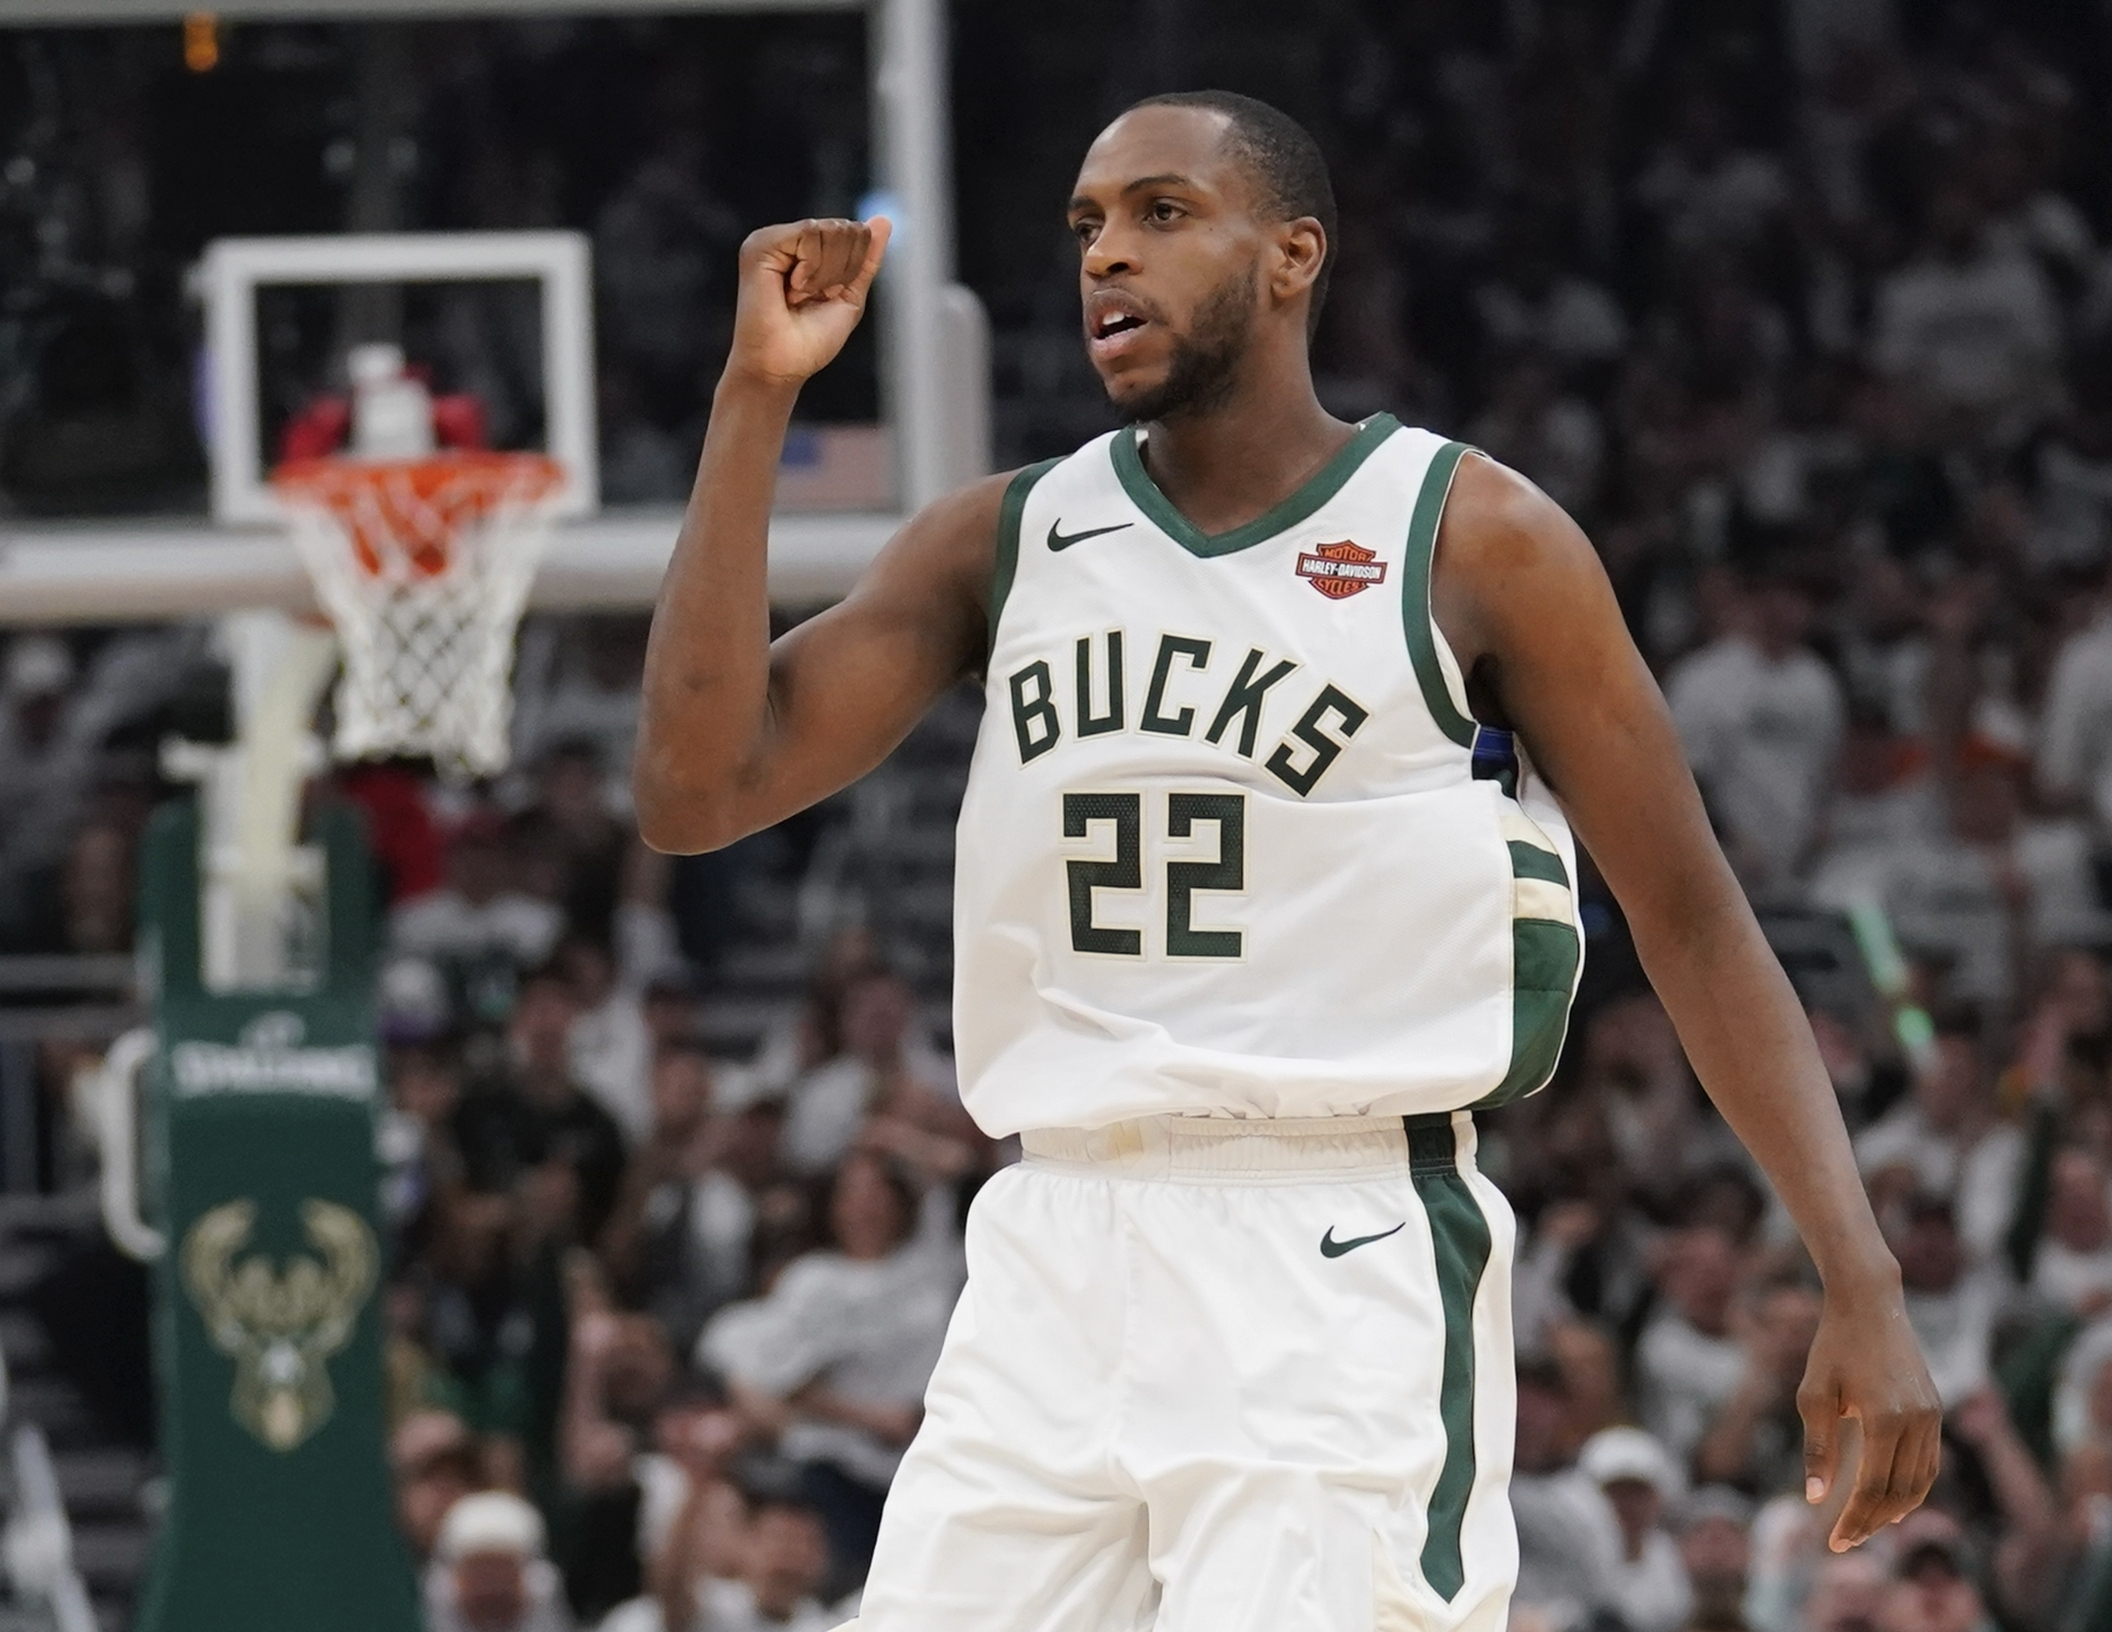 8f4a5195b87 He's watched Antetokounmpo and Middleton turn Bucks into a power - The  Boston Globe